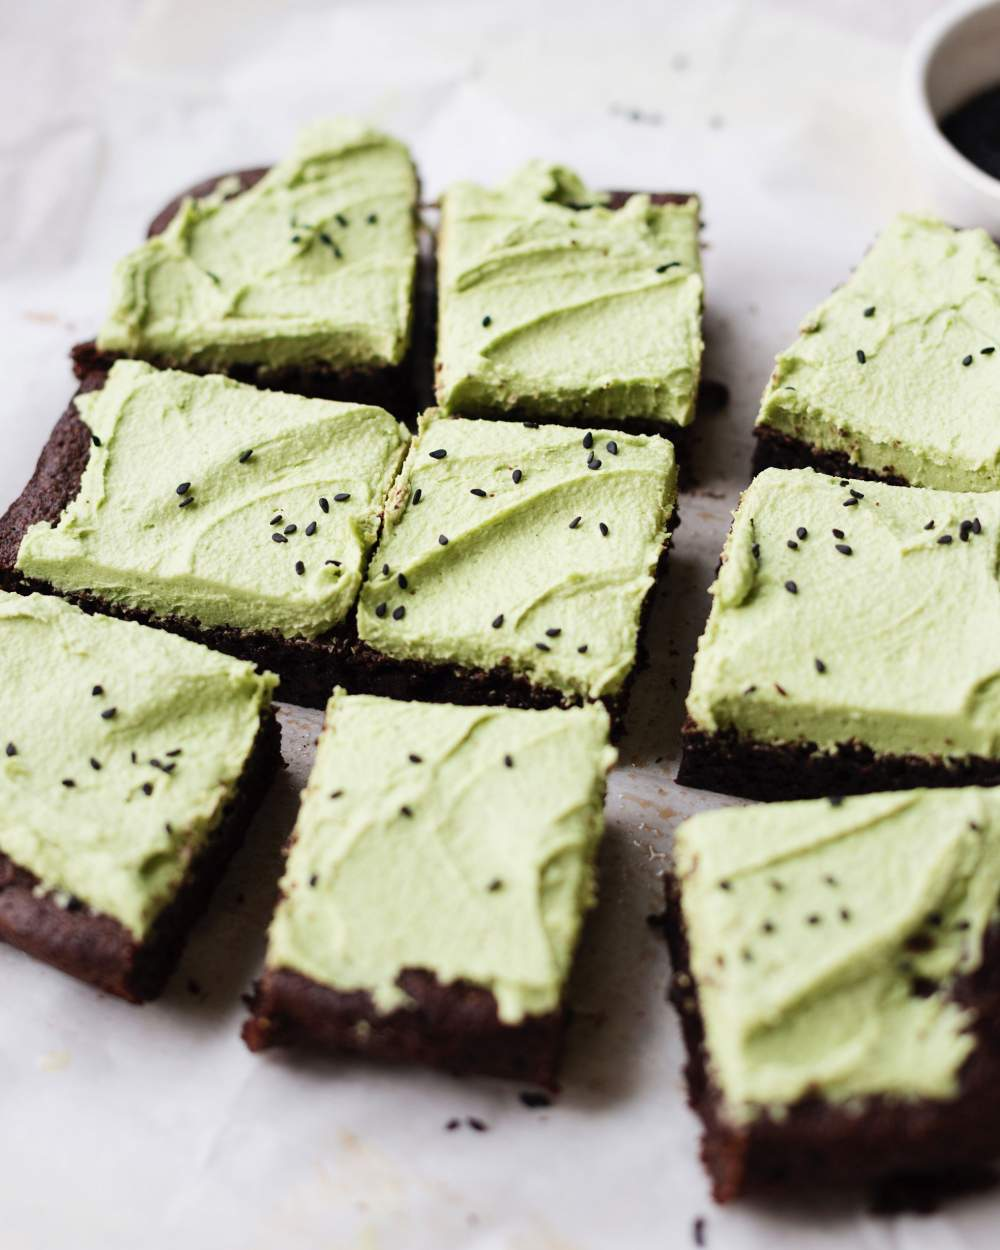 Healthy Decadence - Cashew Frosting Matcha Green Tea Sesame Tahini Brownies